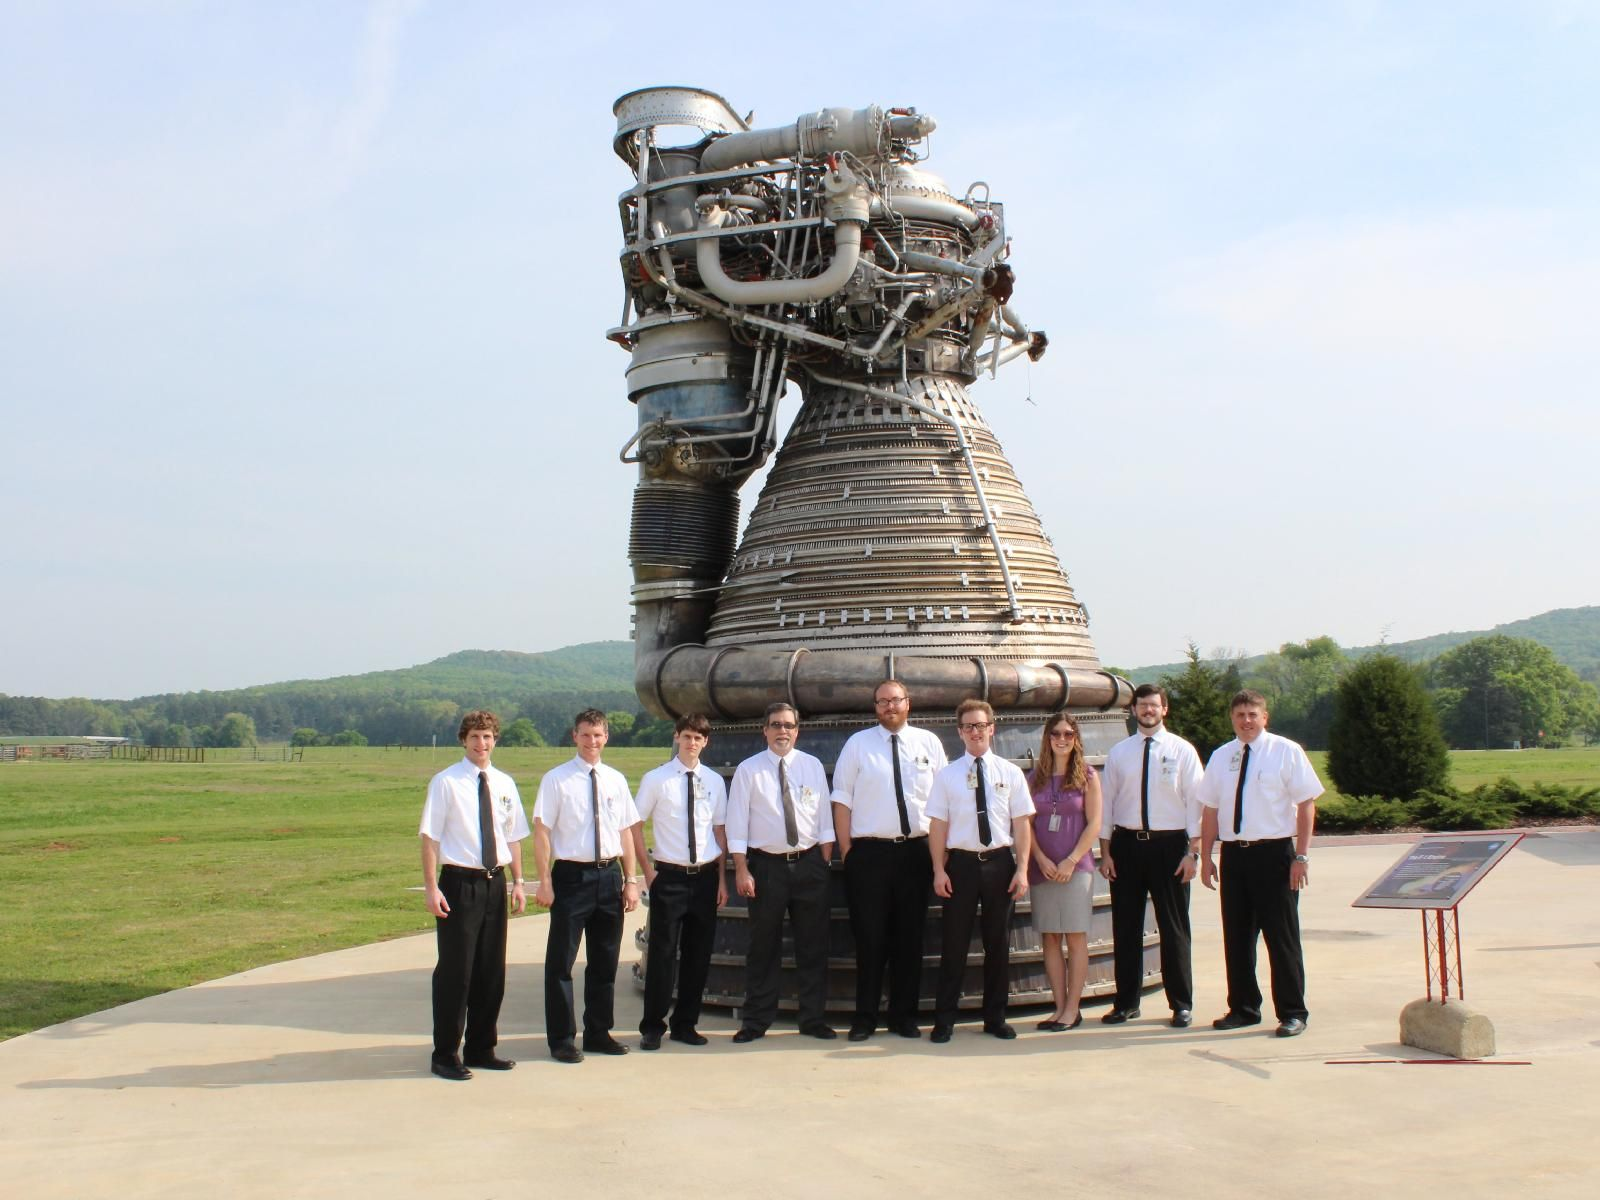 Saturn V Moon Rocket Engine Firing Again After 40 Years